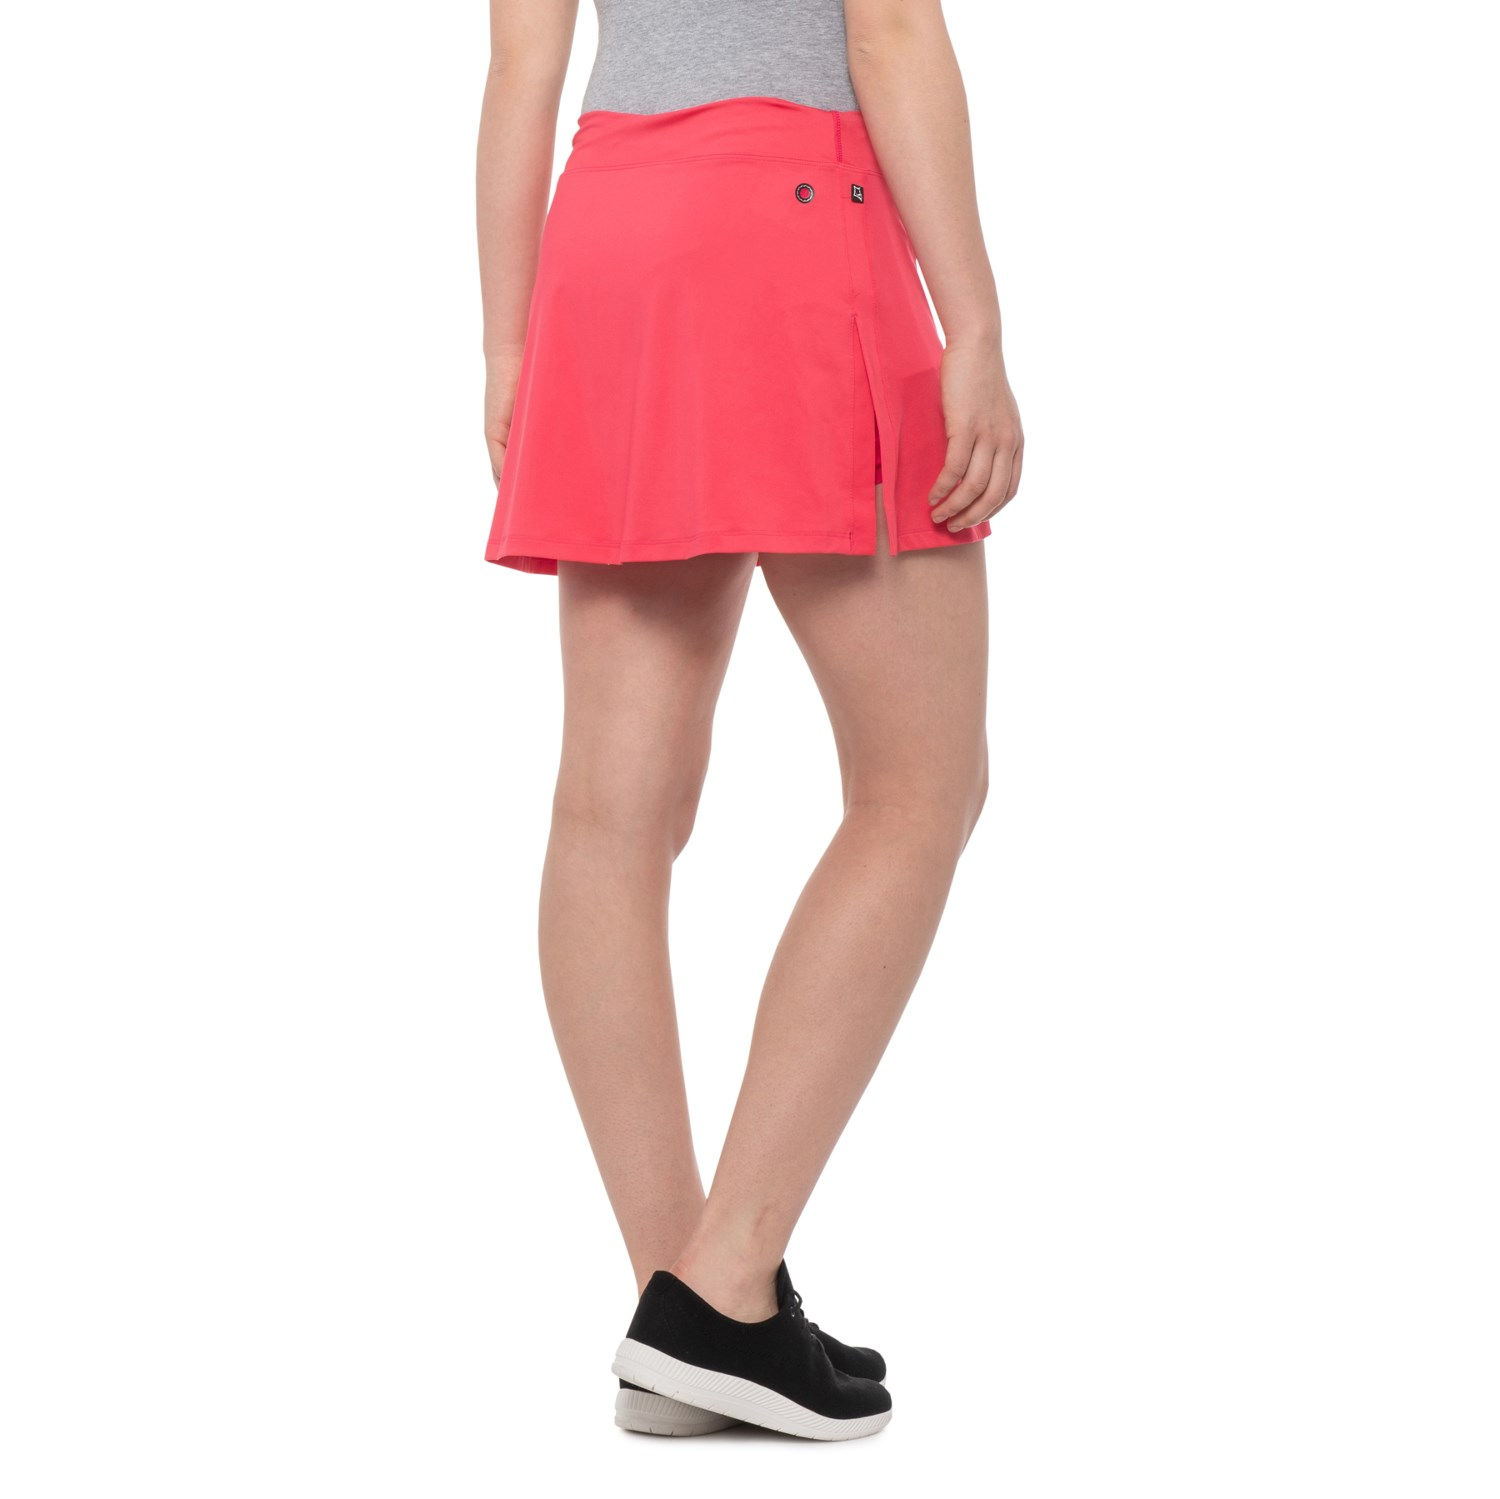 865eea80f6 Skirt Sports Gym Girl Ultra Skort (For Women) - Save 39%